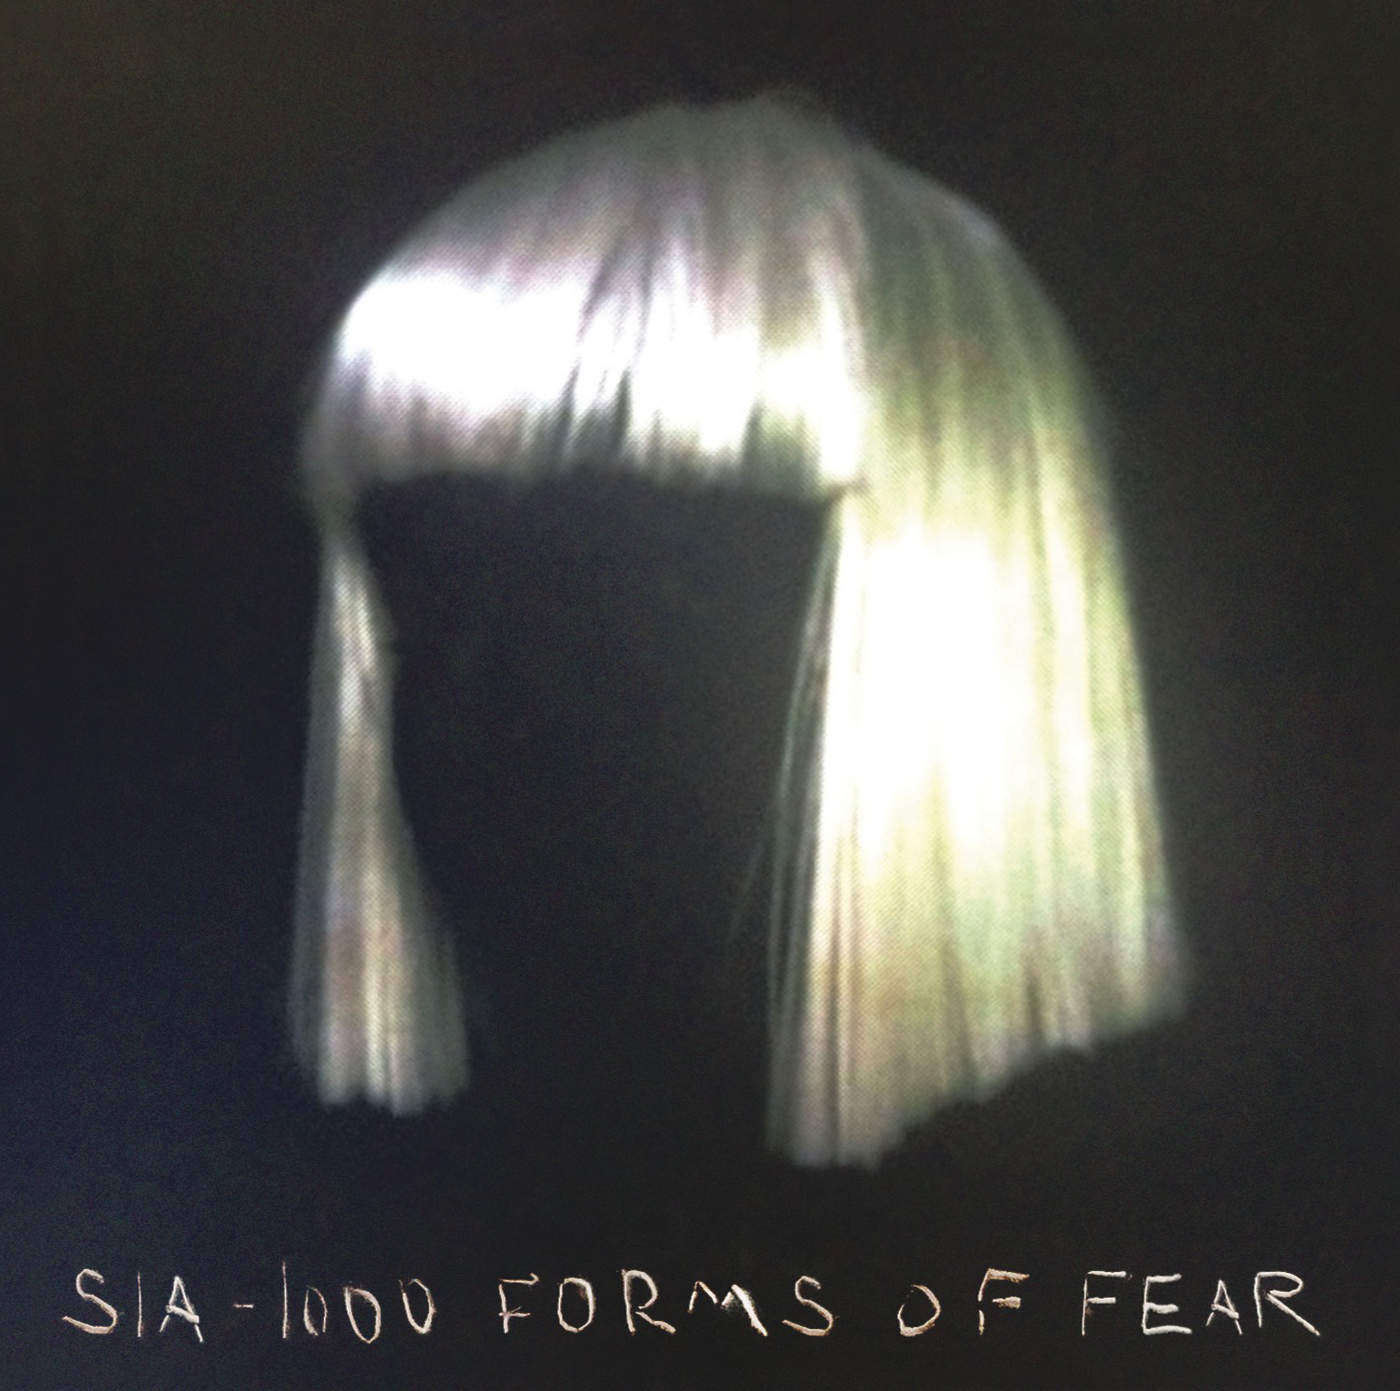 Chandelier (Piano Version) - Sia